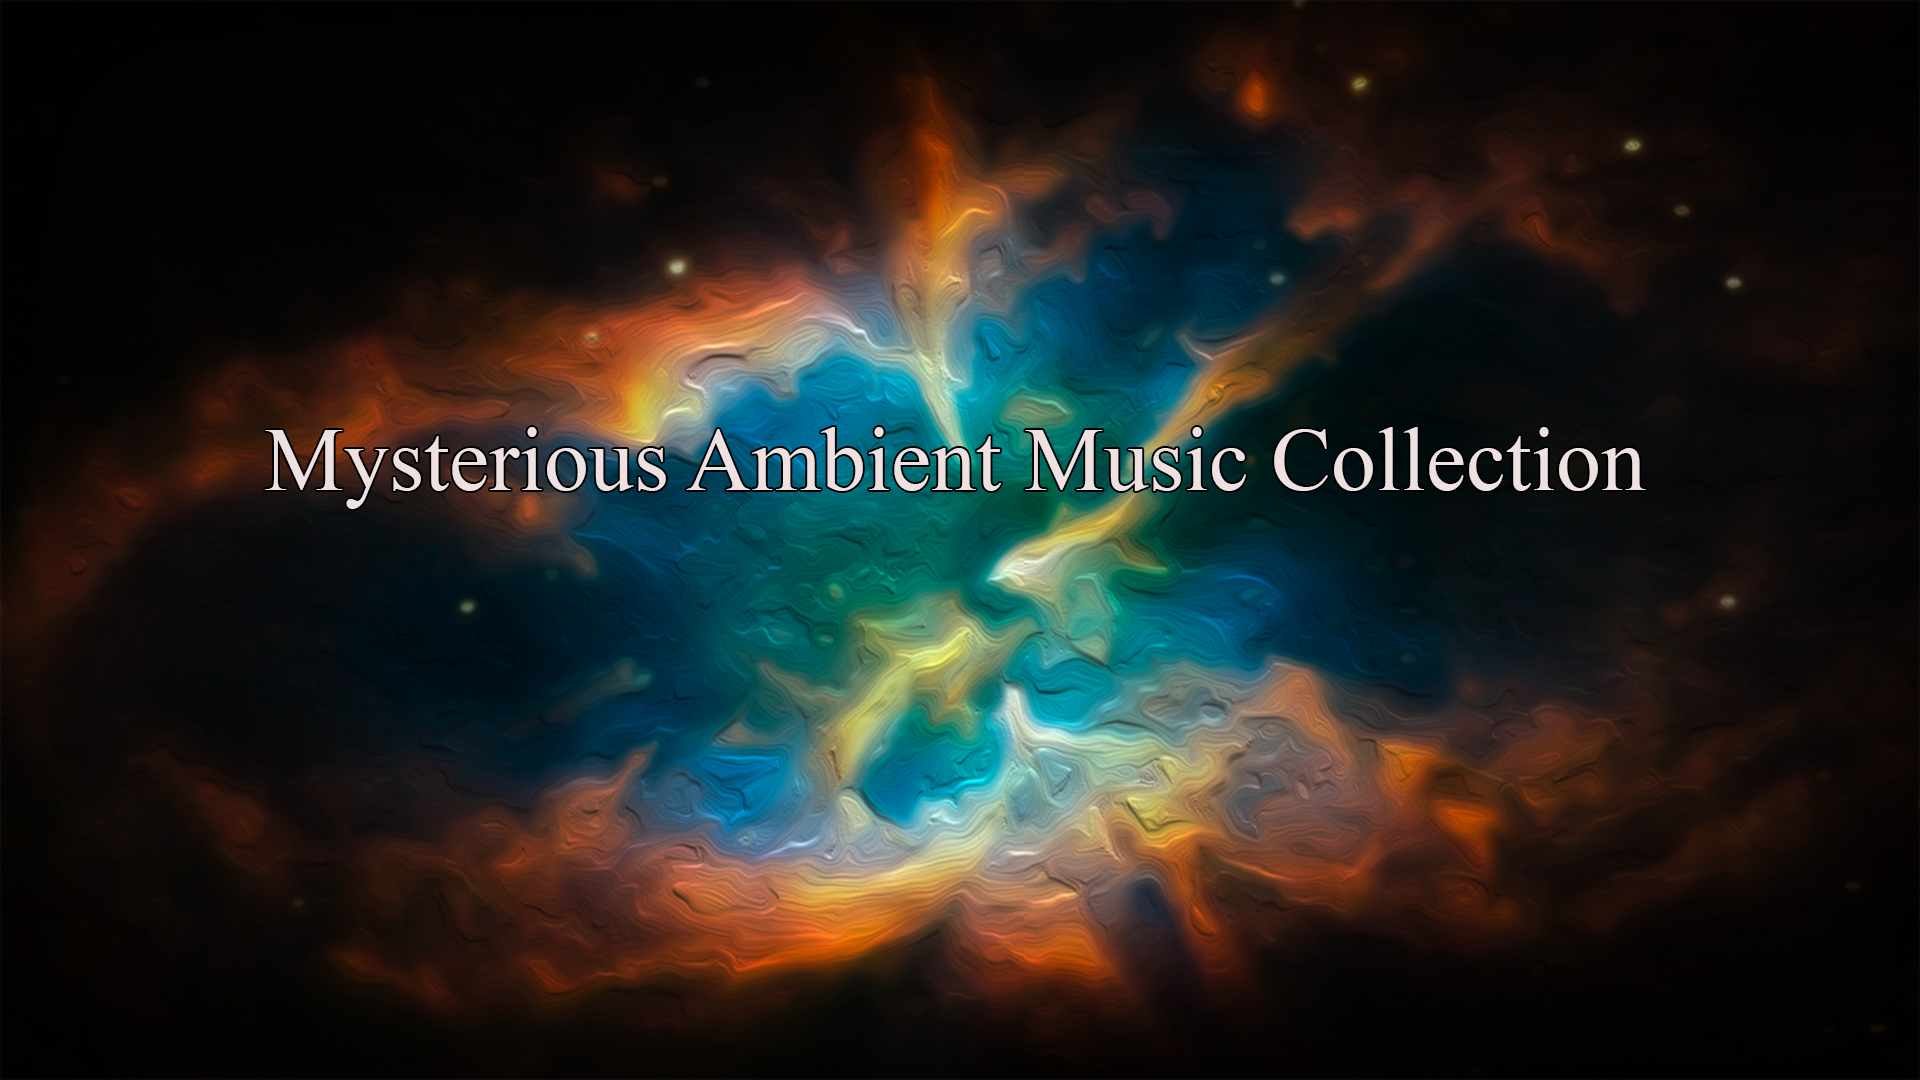 Mysterious Ambient Music by Taylor Brook Music